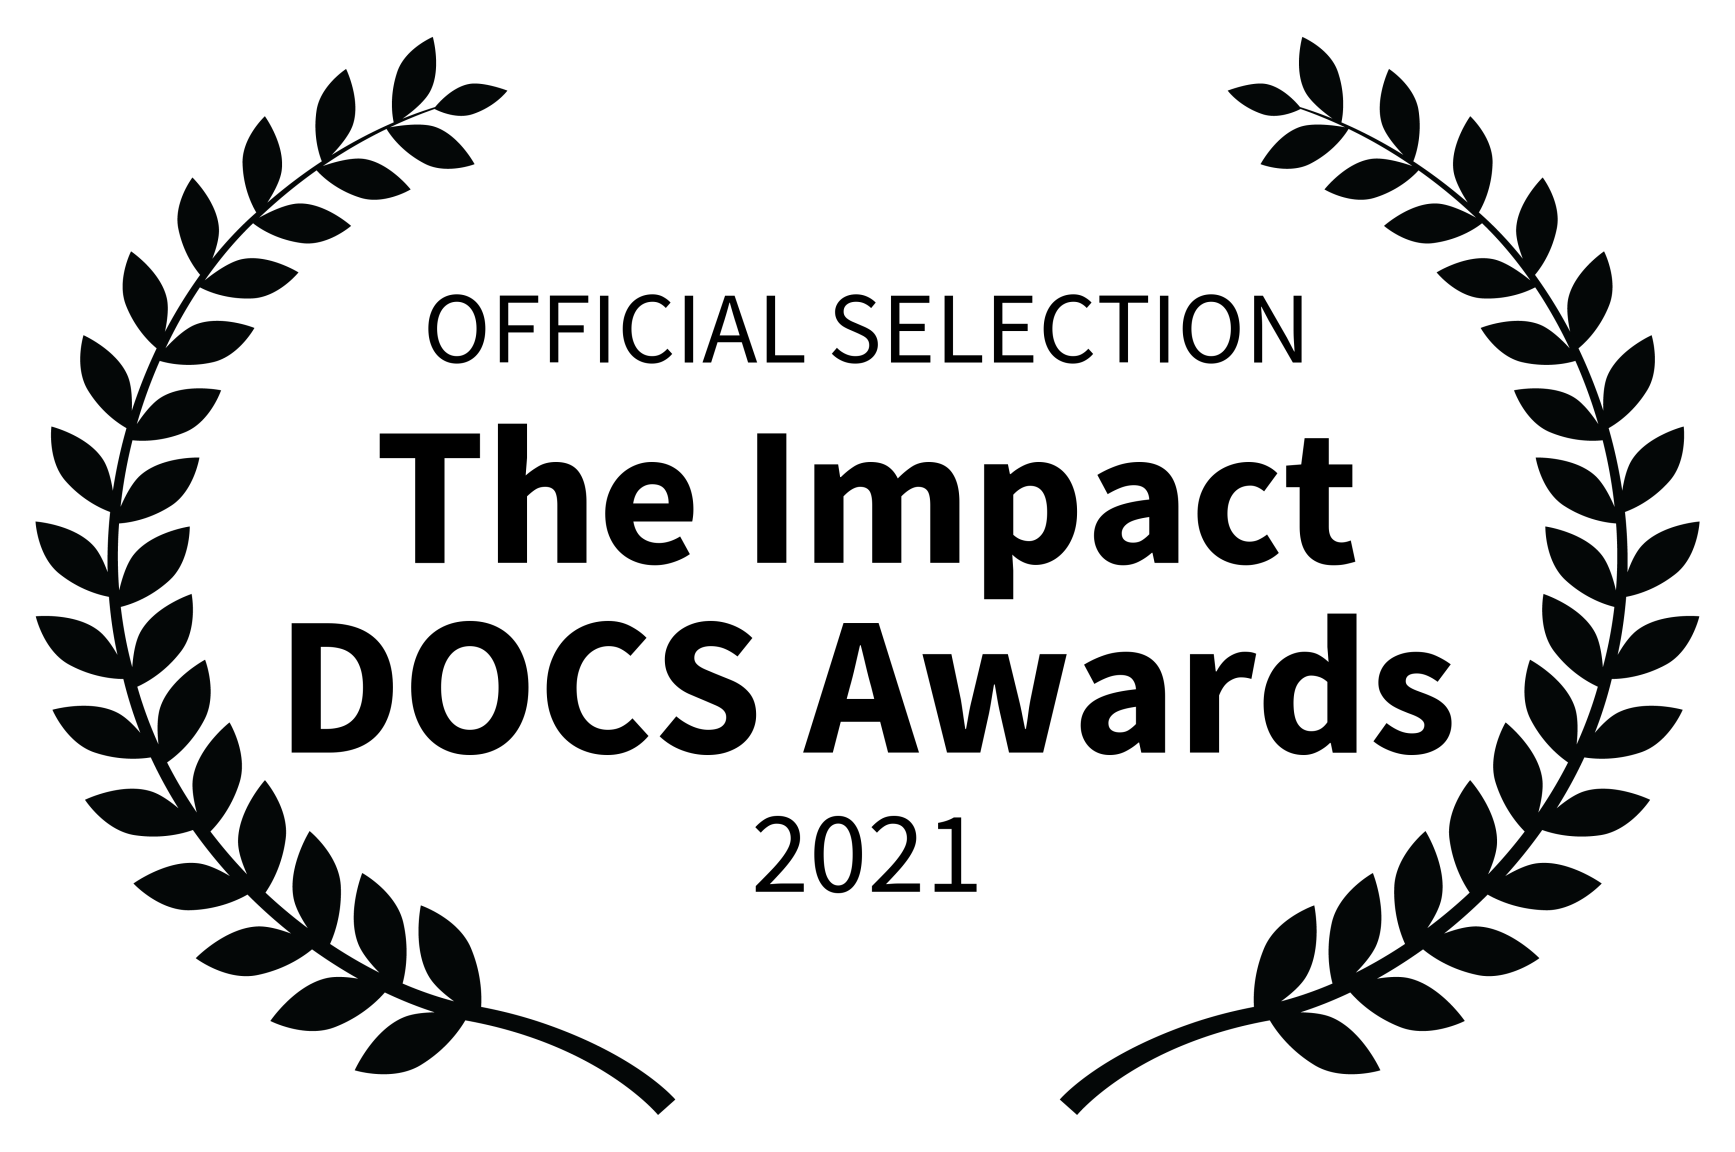 OFFICIAL SELECTION - The Impact DOCS Awards - 2021